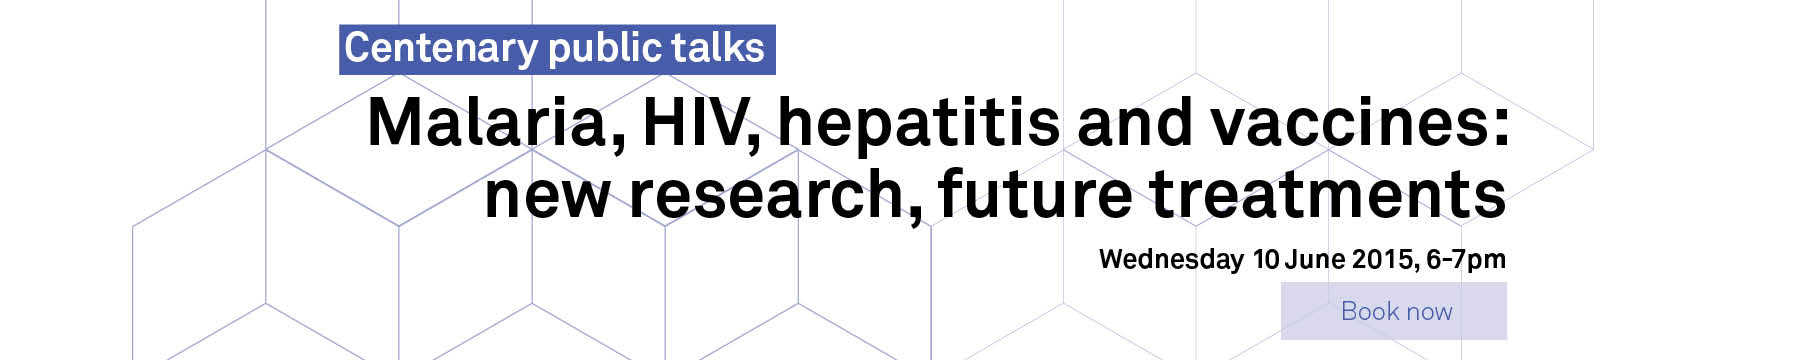 Malaria, HIV, hepatitis and vaccines: new research, future treatments